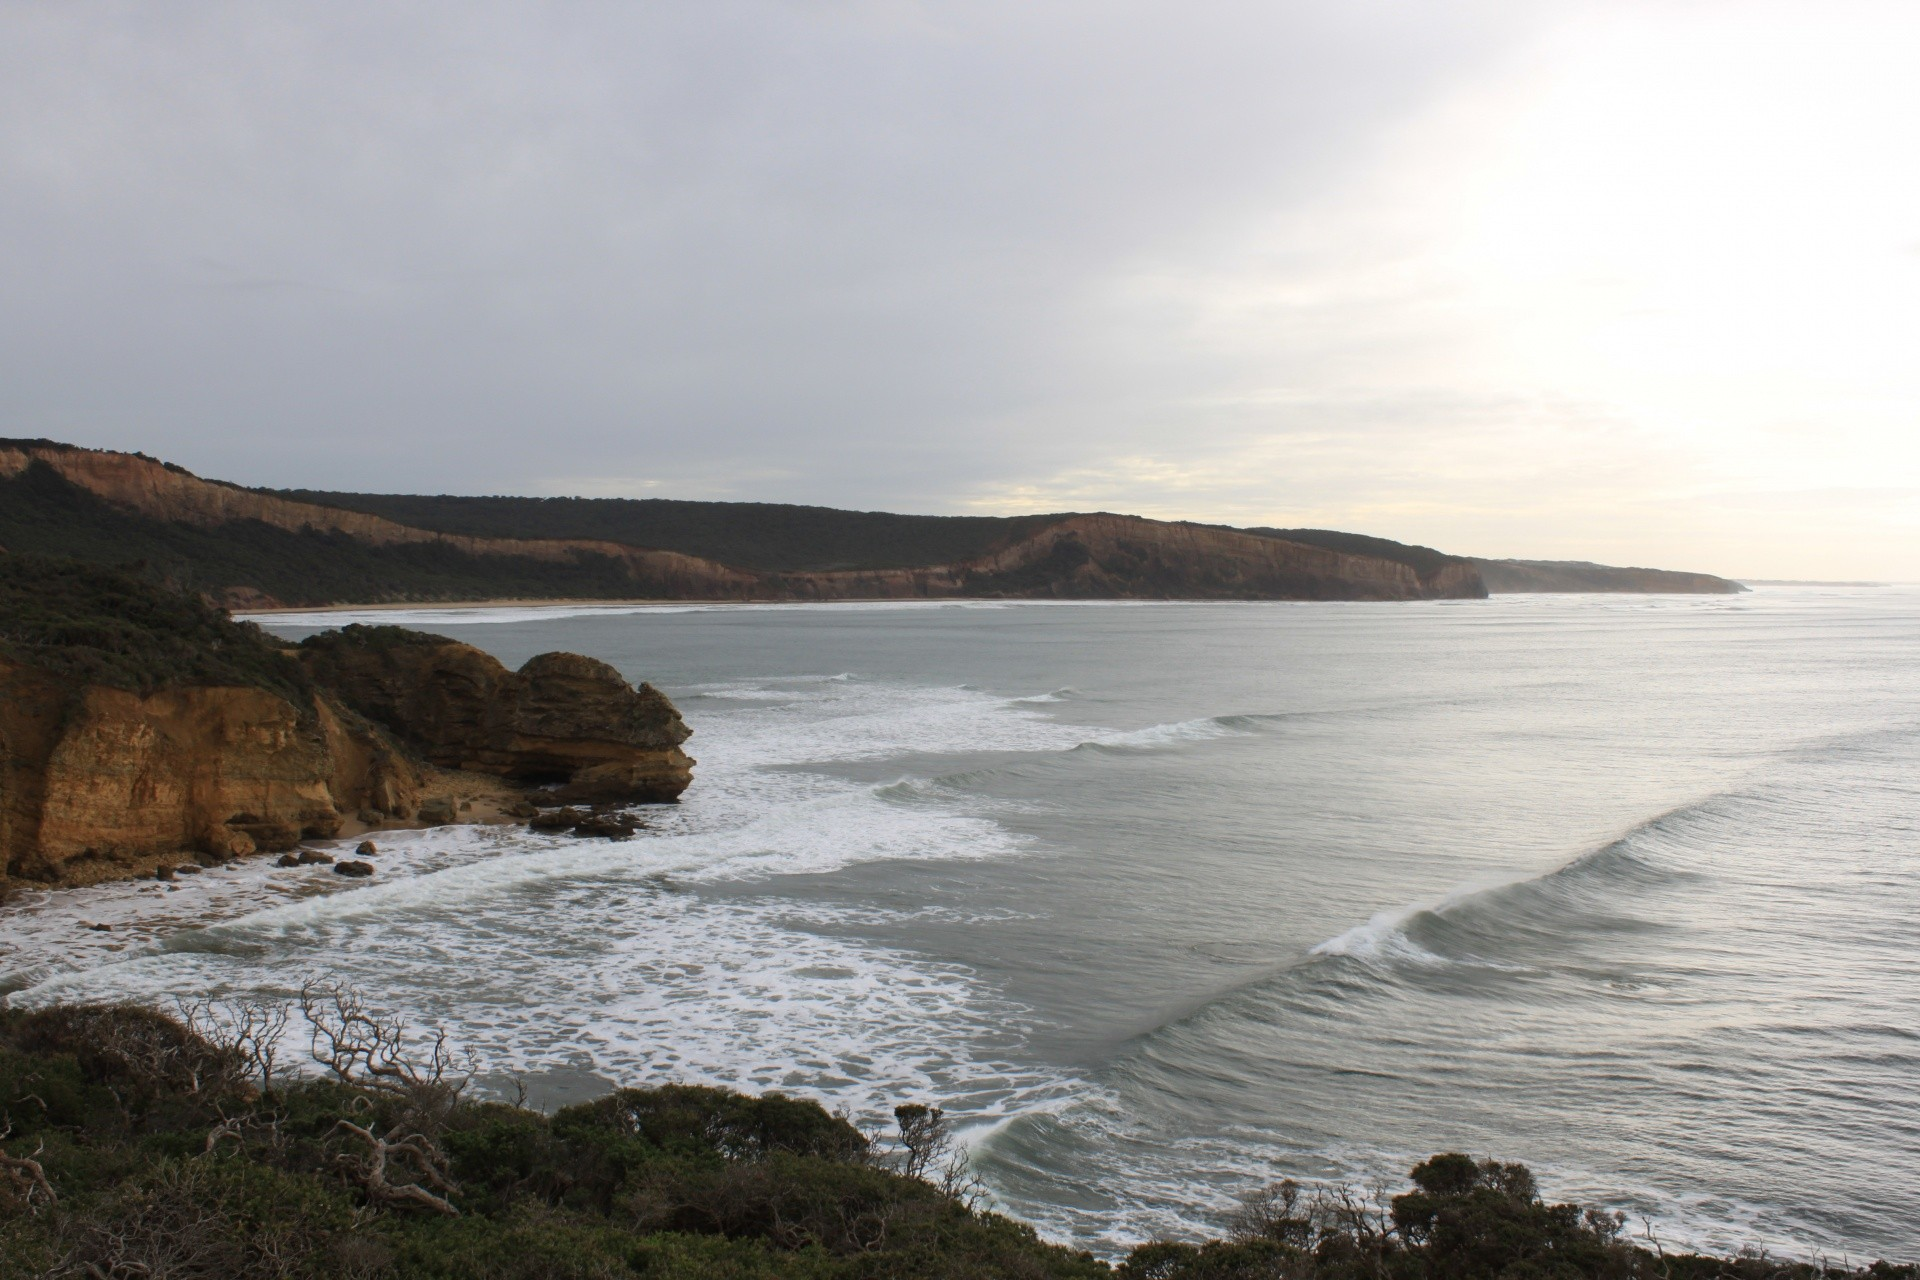 Tania van Megchelen's photo of Point Addis